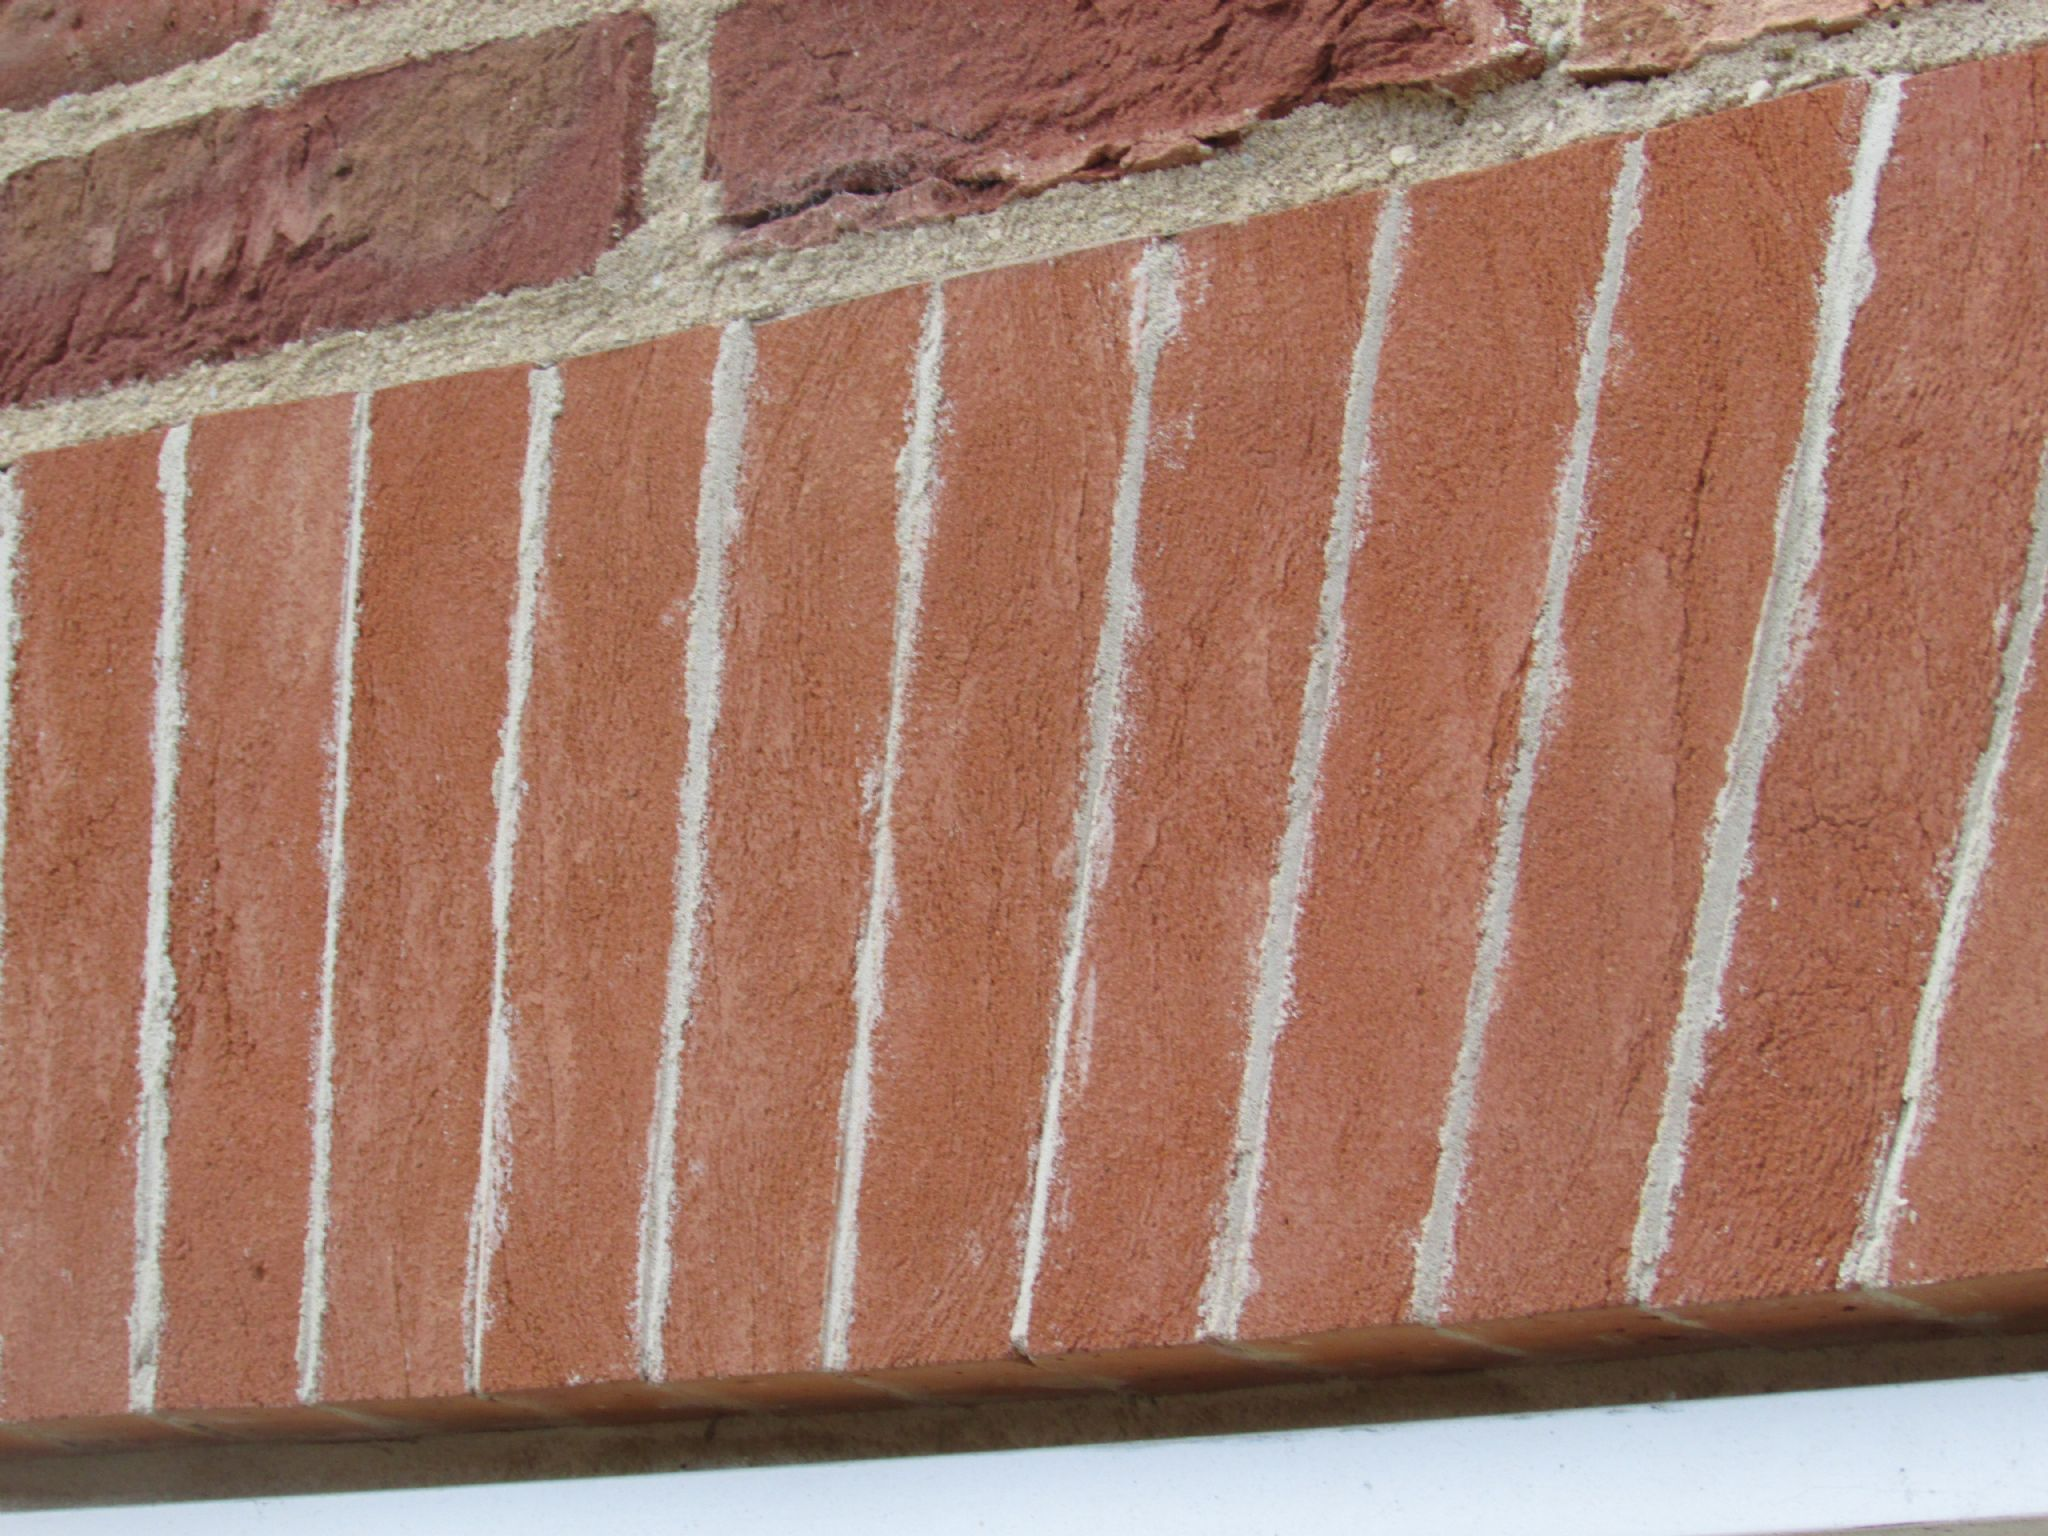 Lime mortar for fine joints white lime mortar for fine joints geenschuldenfo Choice Image